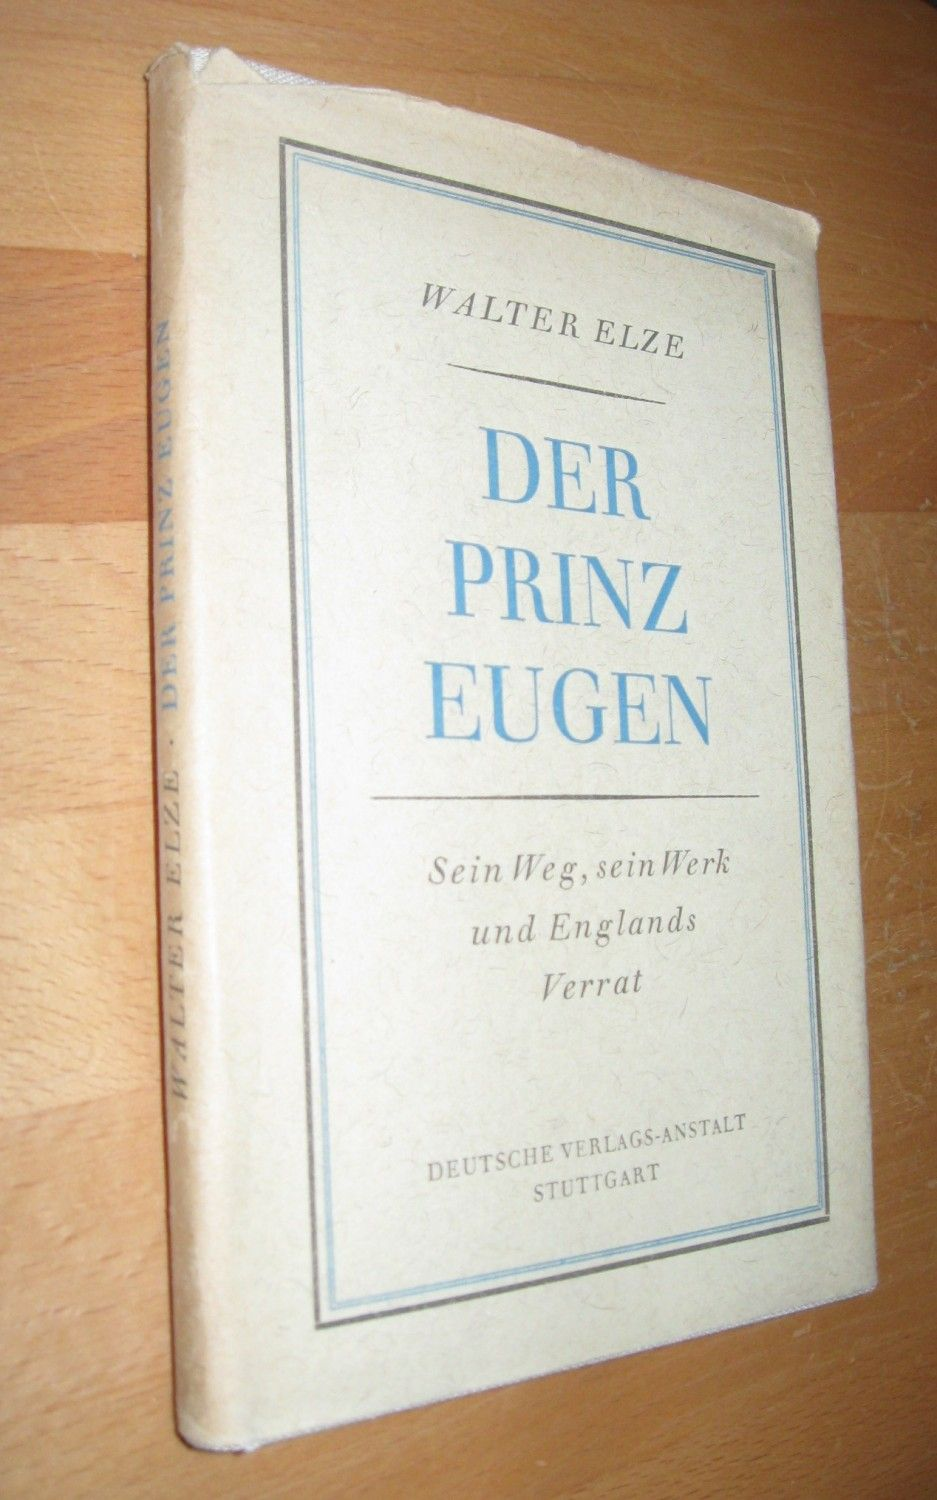 der prinz eugen by walter elze 1940 from gerd suelmann. Black Bedroom Furniture Sets. Home Design Ideas